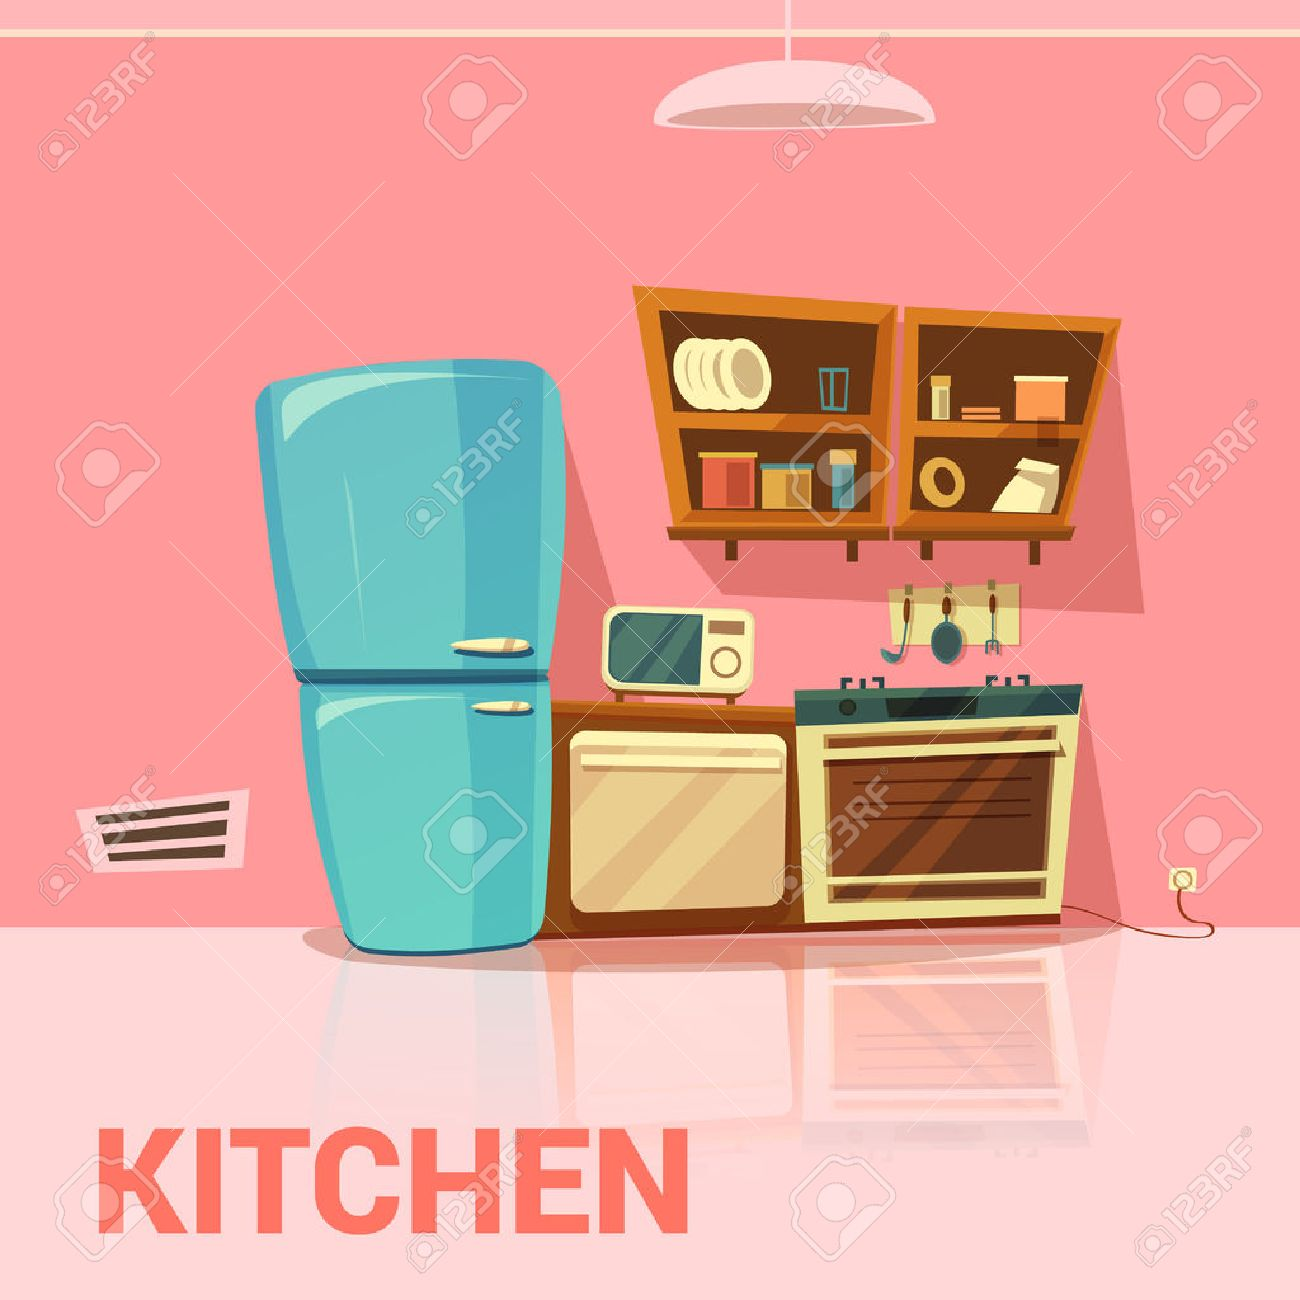 Kitchen retro design with fridge microwave oven and cooker cartoon vector illustration - 52695573